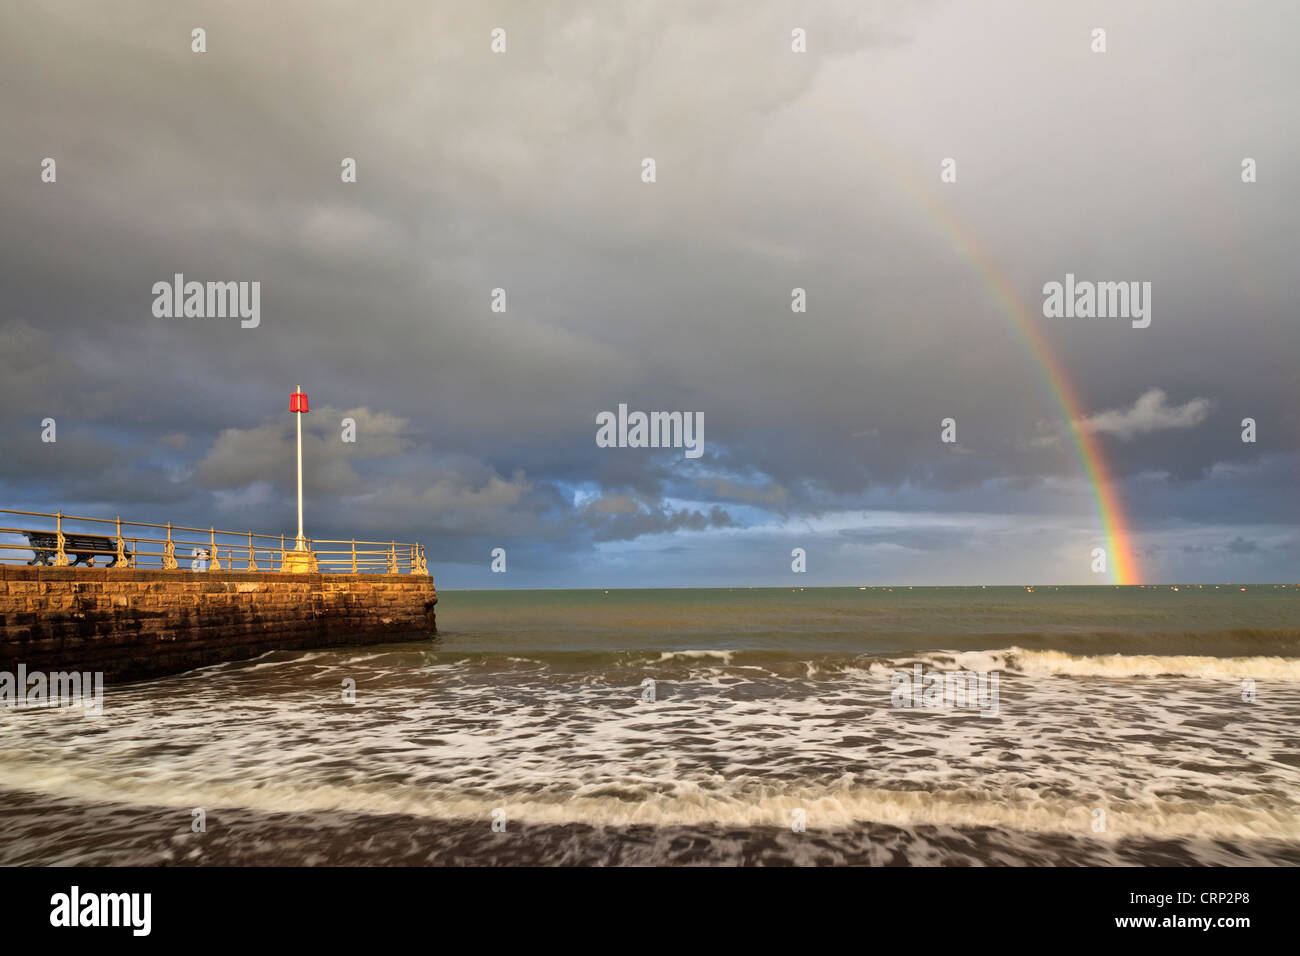 Rainbow over the sea at Swanage with the Banjo Jetty in the foreground. - Stock Image